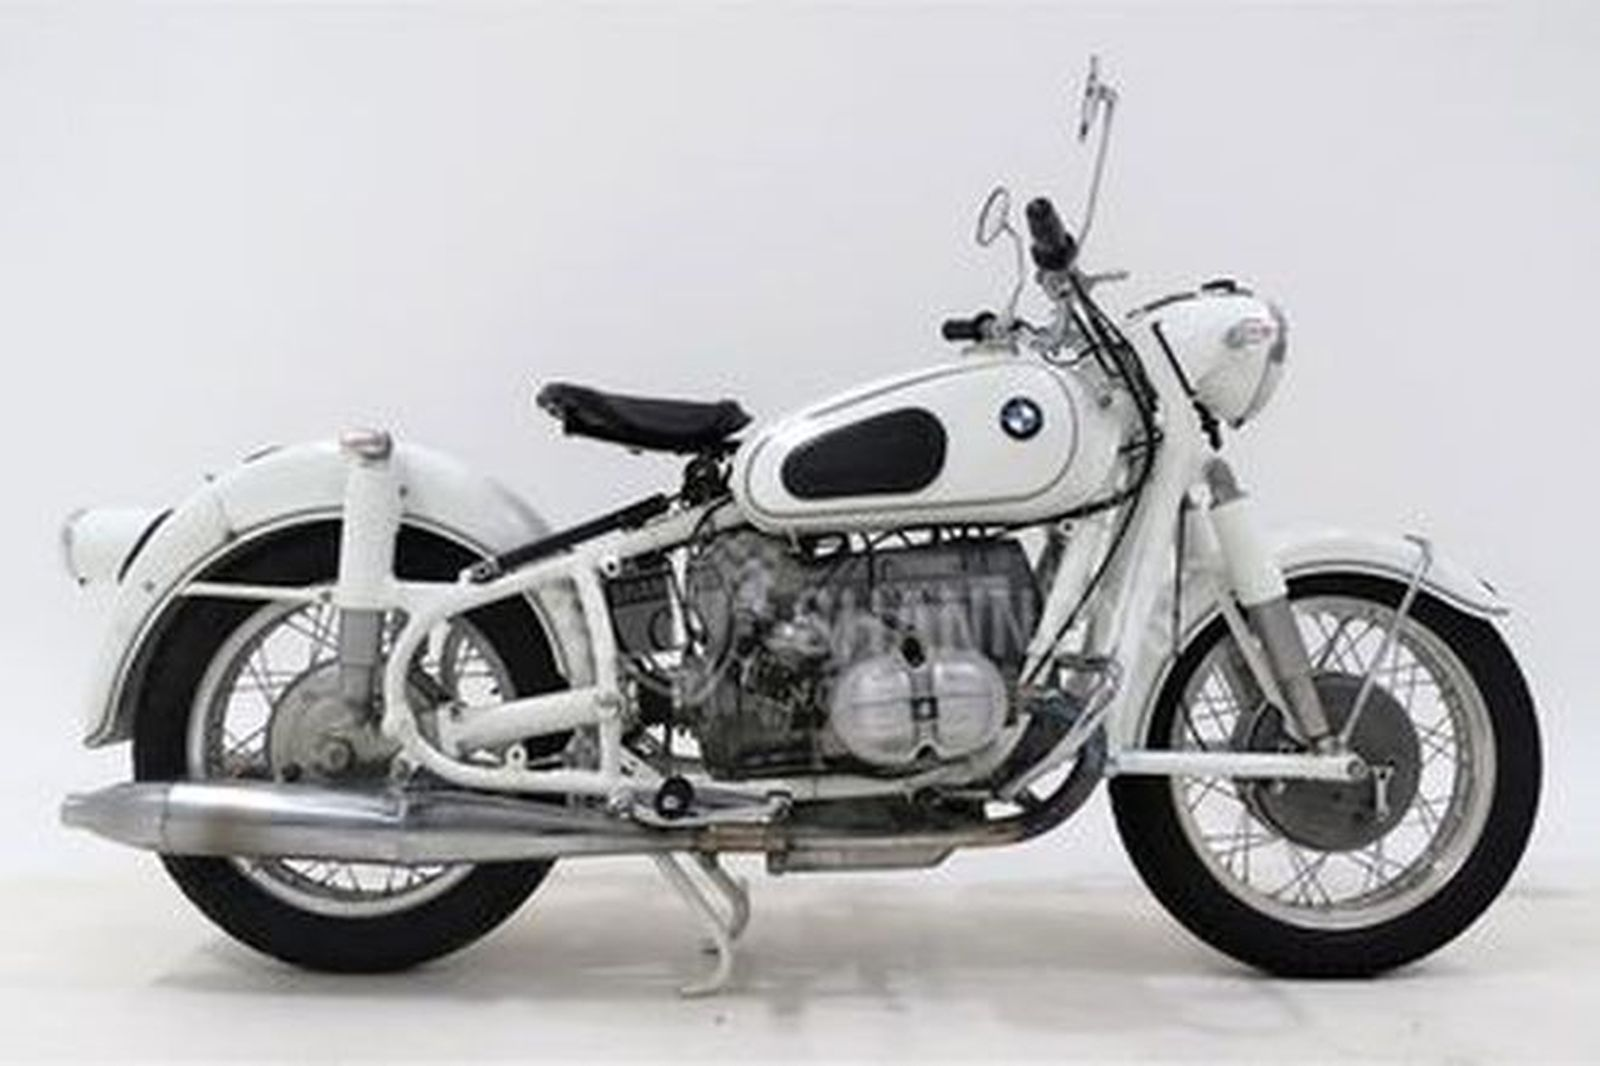 BMW R69S 800cc 'Modified' Motorcycle